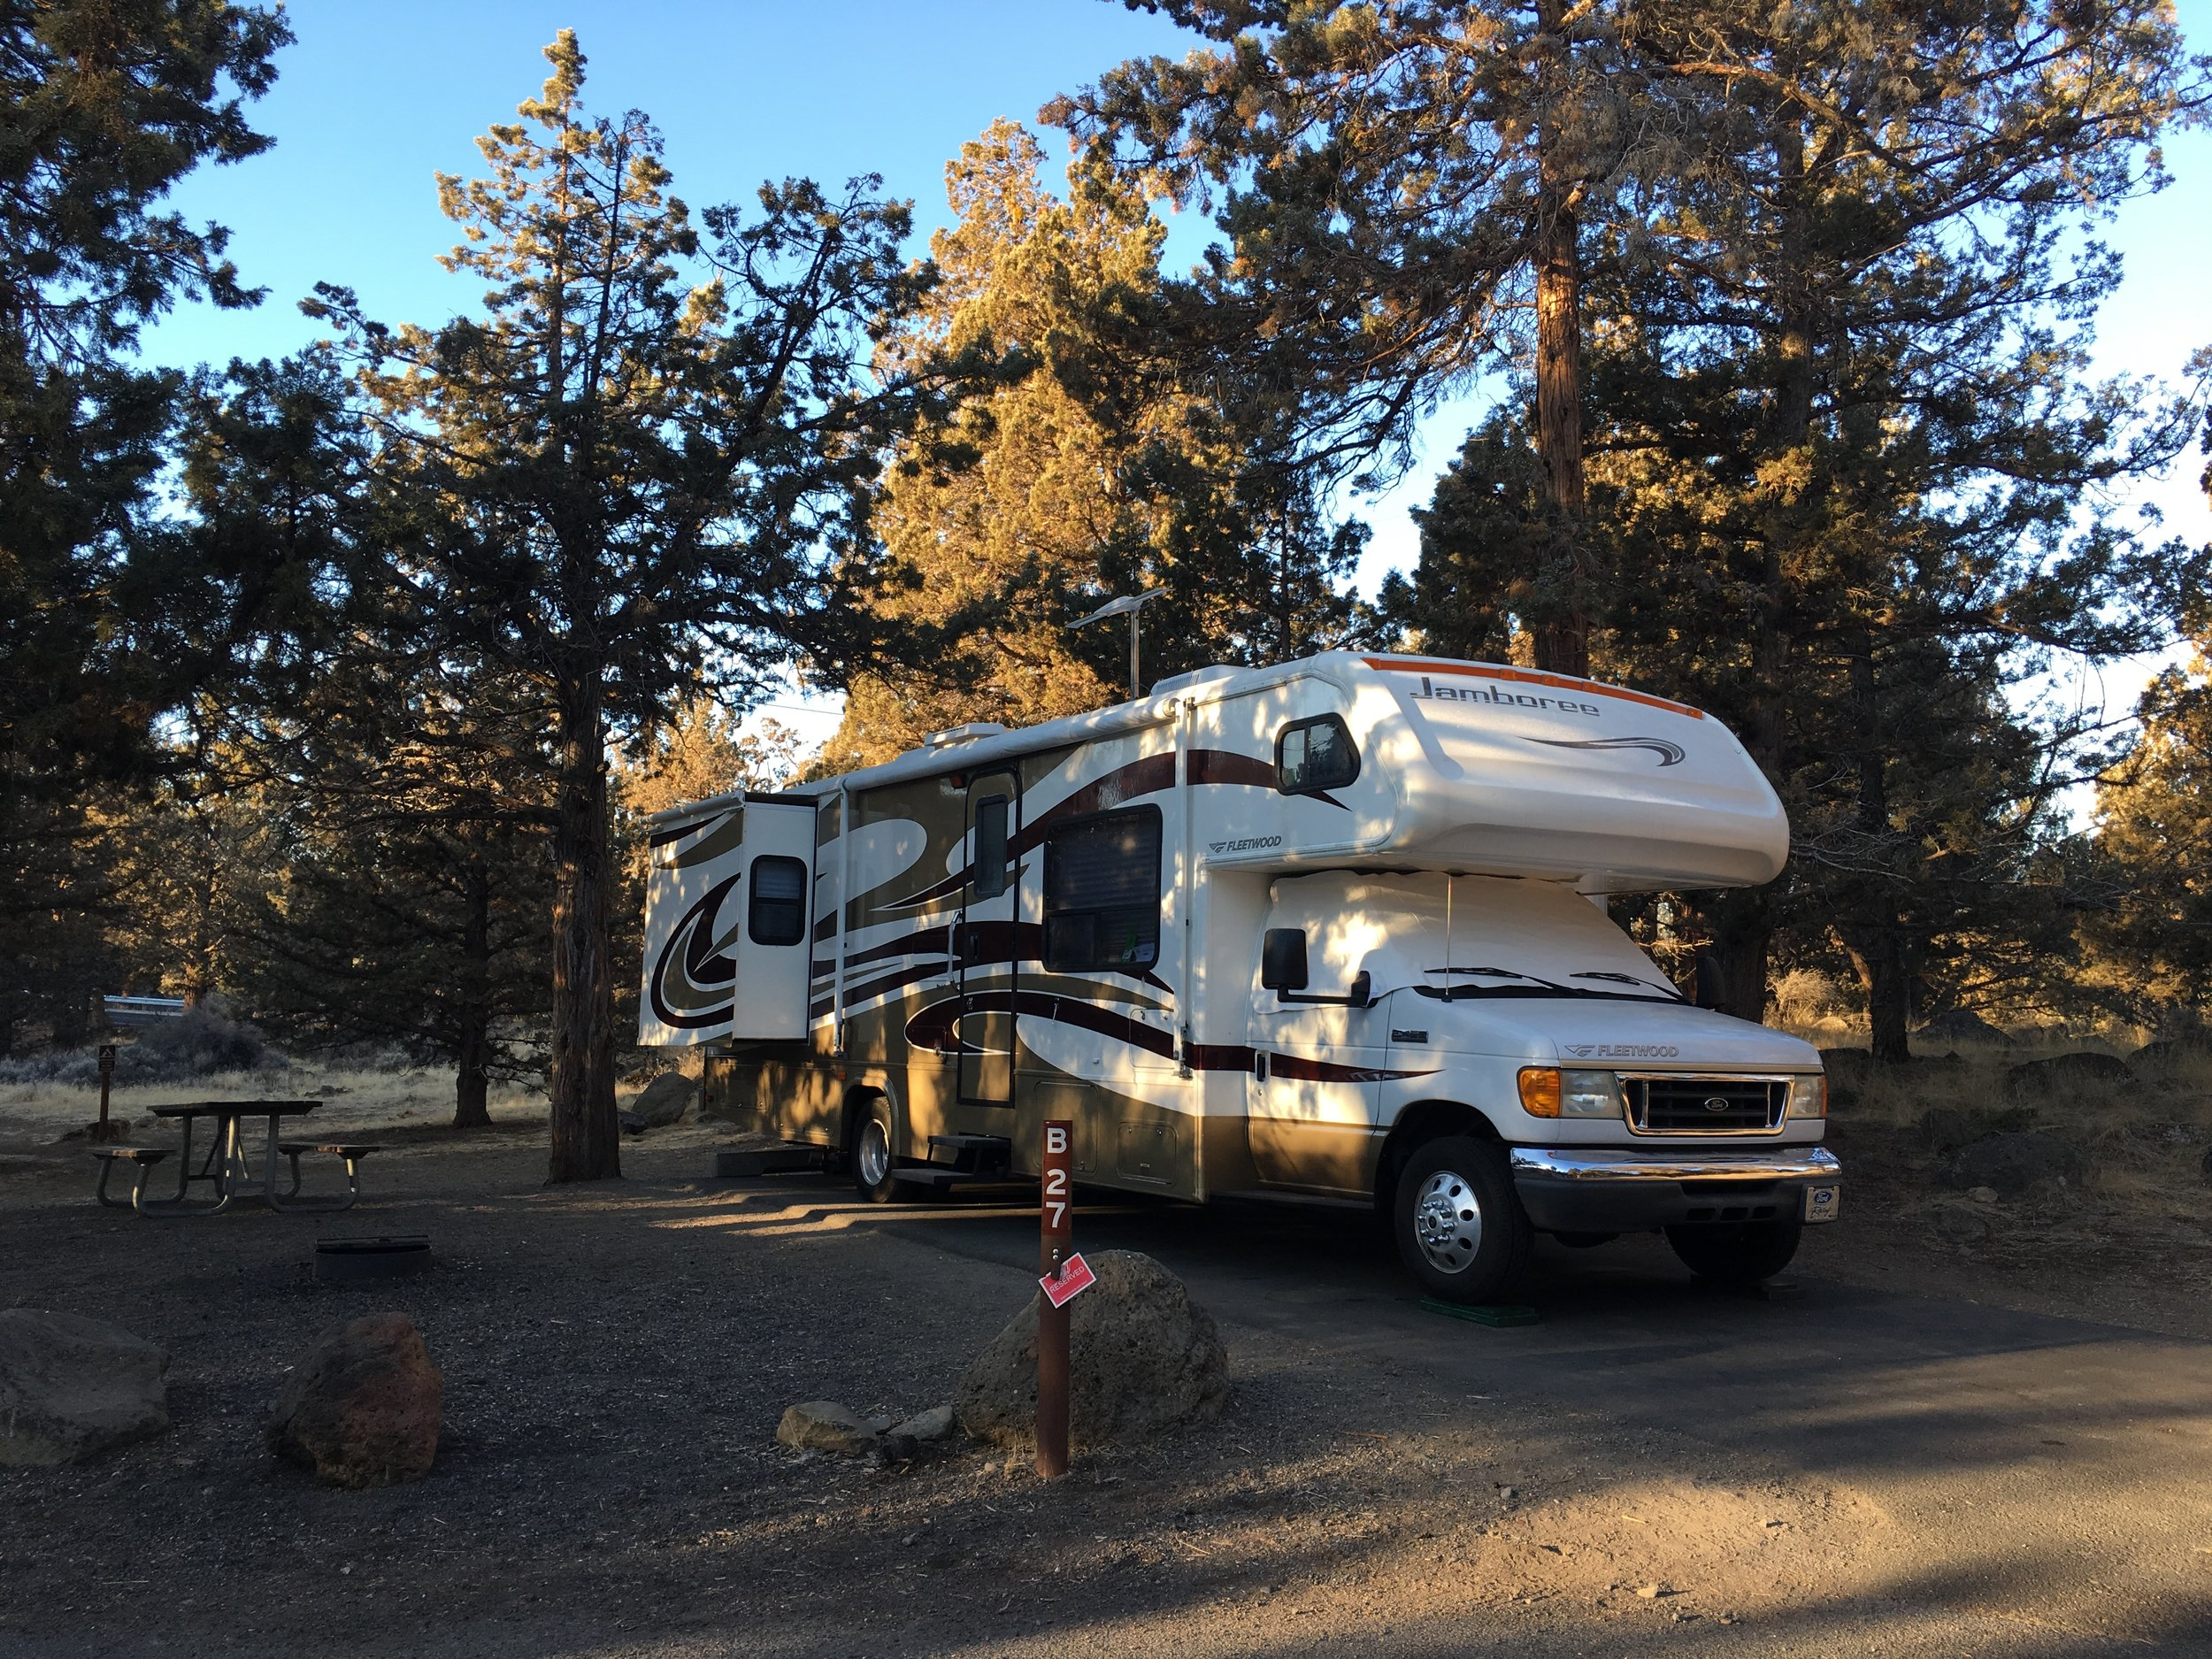 A few beautiful days in Bend! Our motorhome camping trip to Bend, Oregon